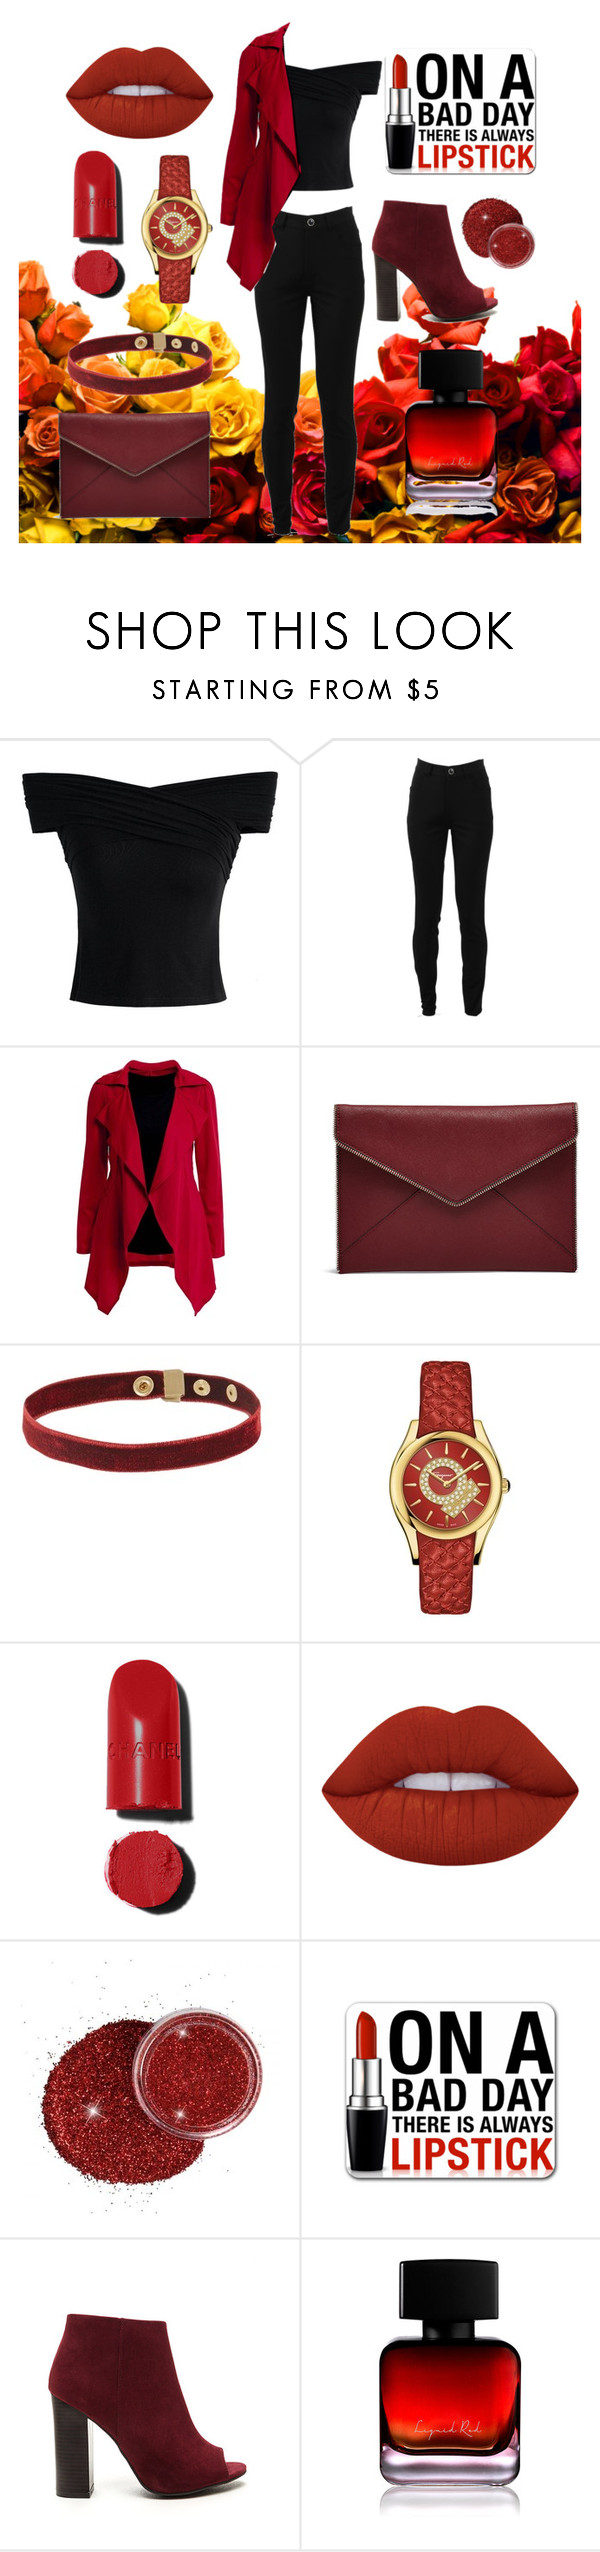 """""""Lipstick"""" by amandaubub ❤ liked on Polyvore featuring Chicwish, Victoria Beckham, Rebecca Minkoff, Salvatore Ferragamo, Chanel, Lime Crime and The Collection by Phuong Dang"""